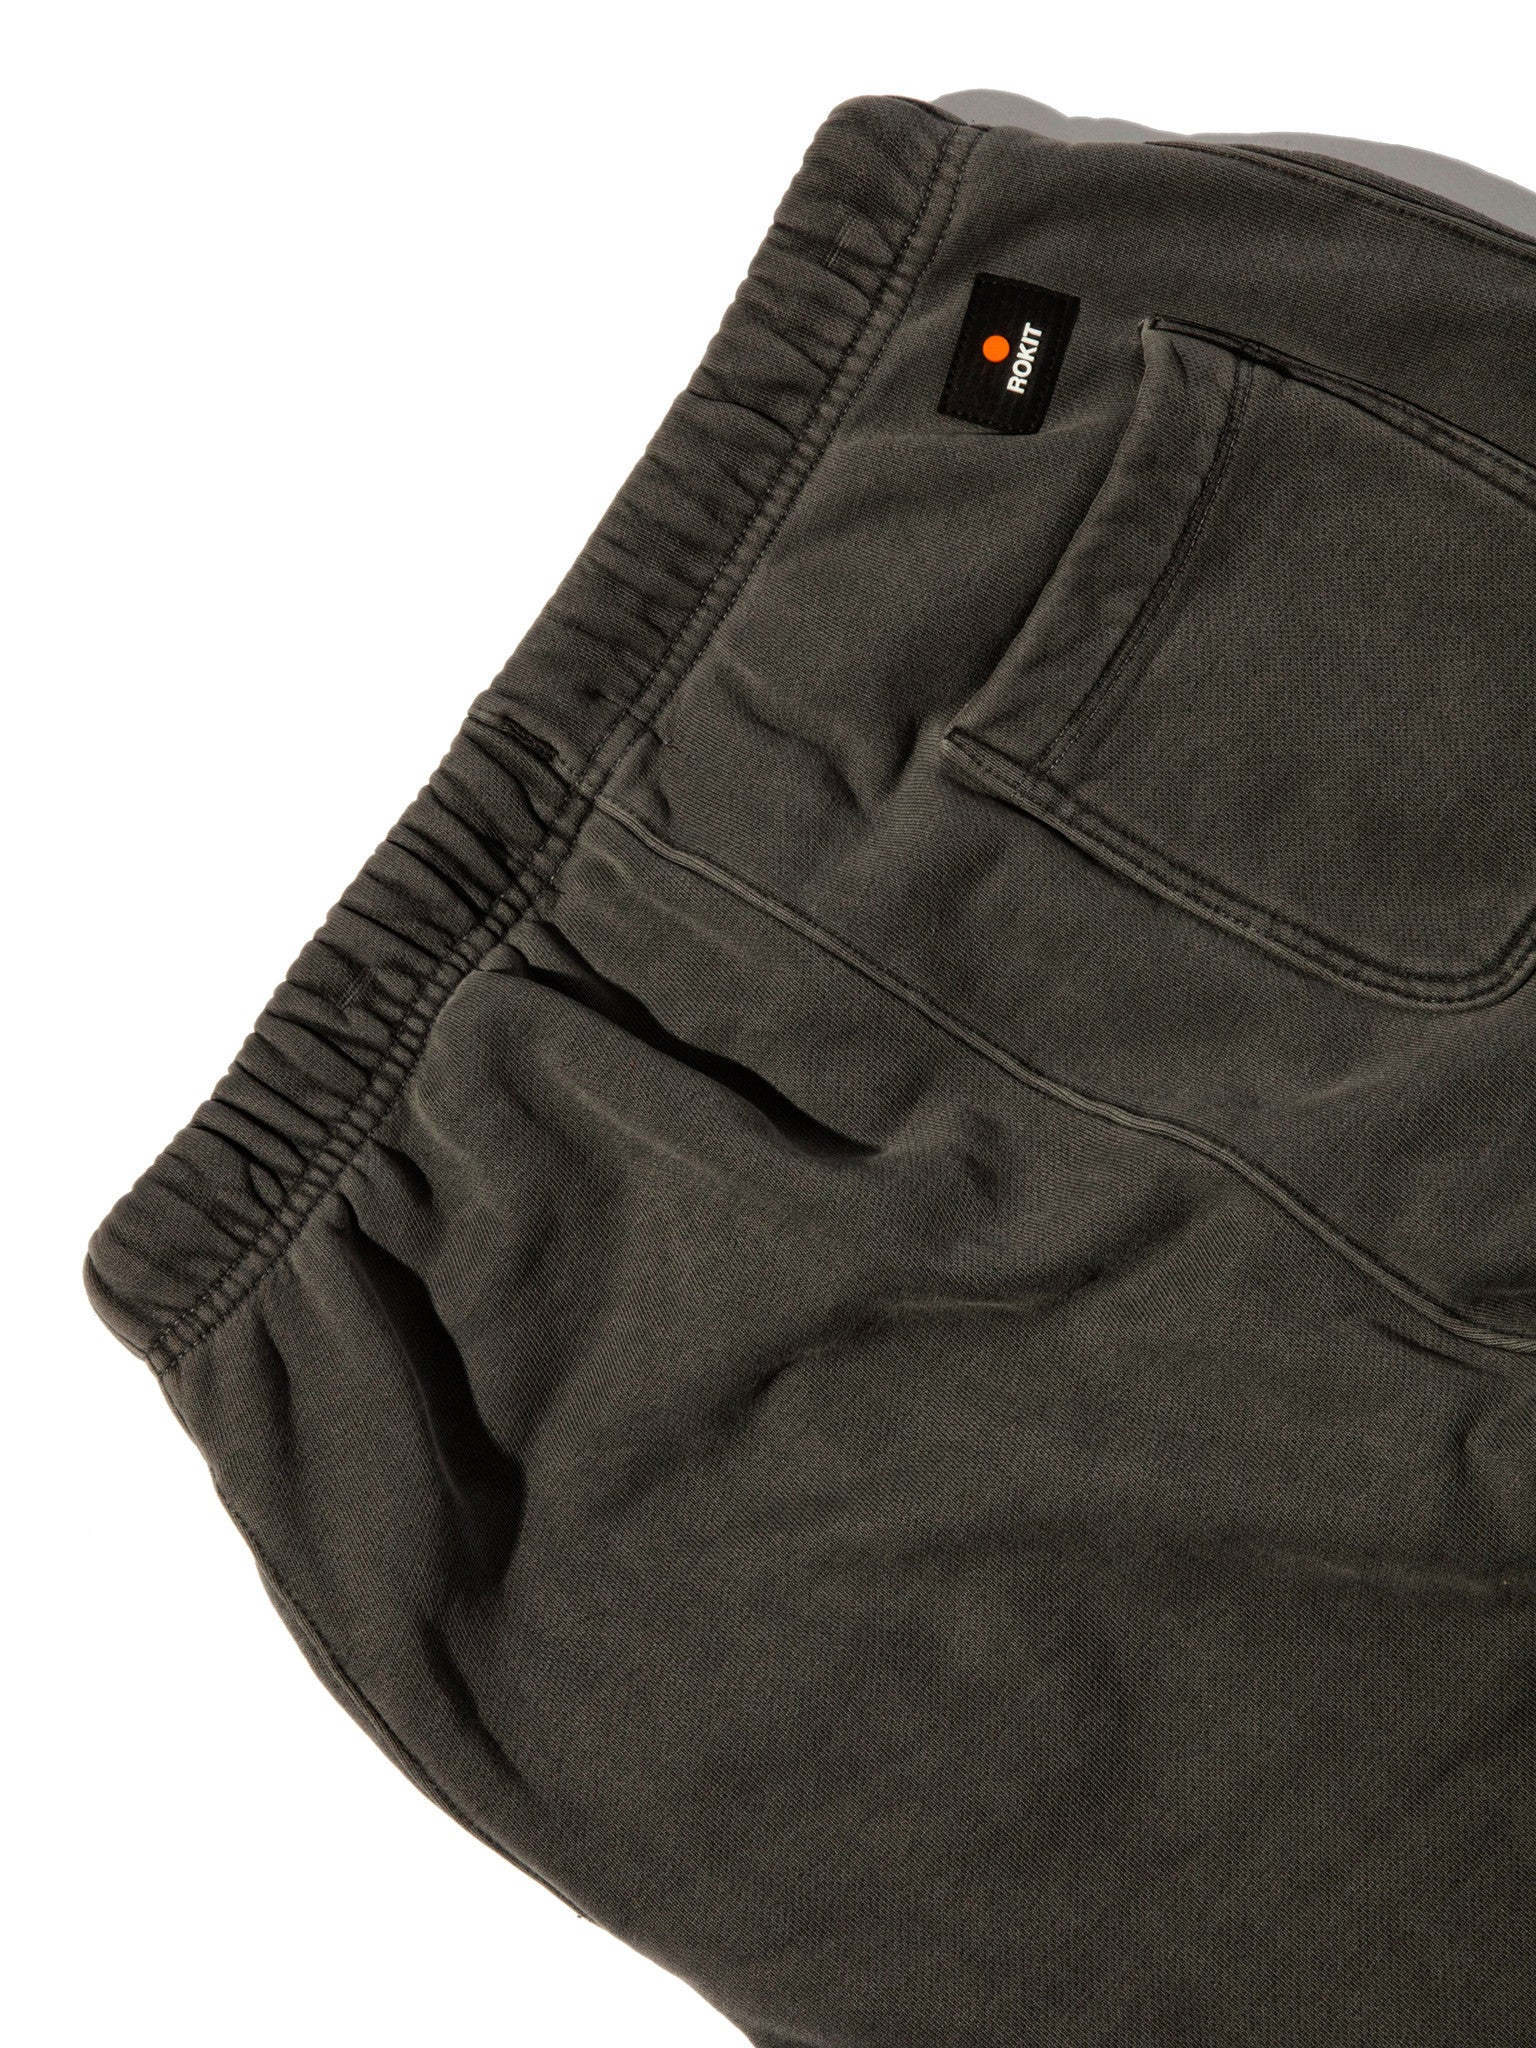 Orange Rumble Sweatpant 10